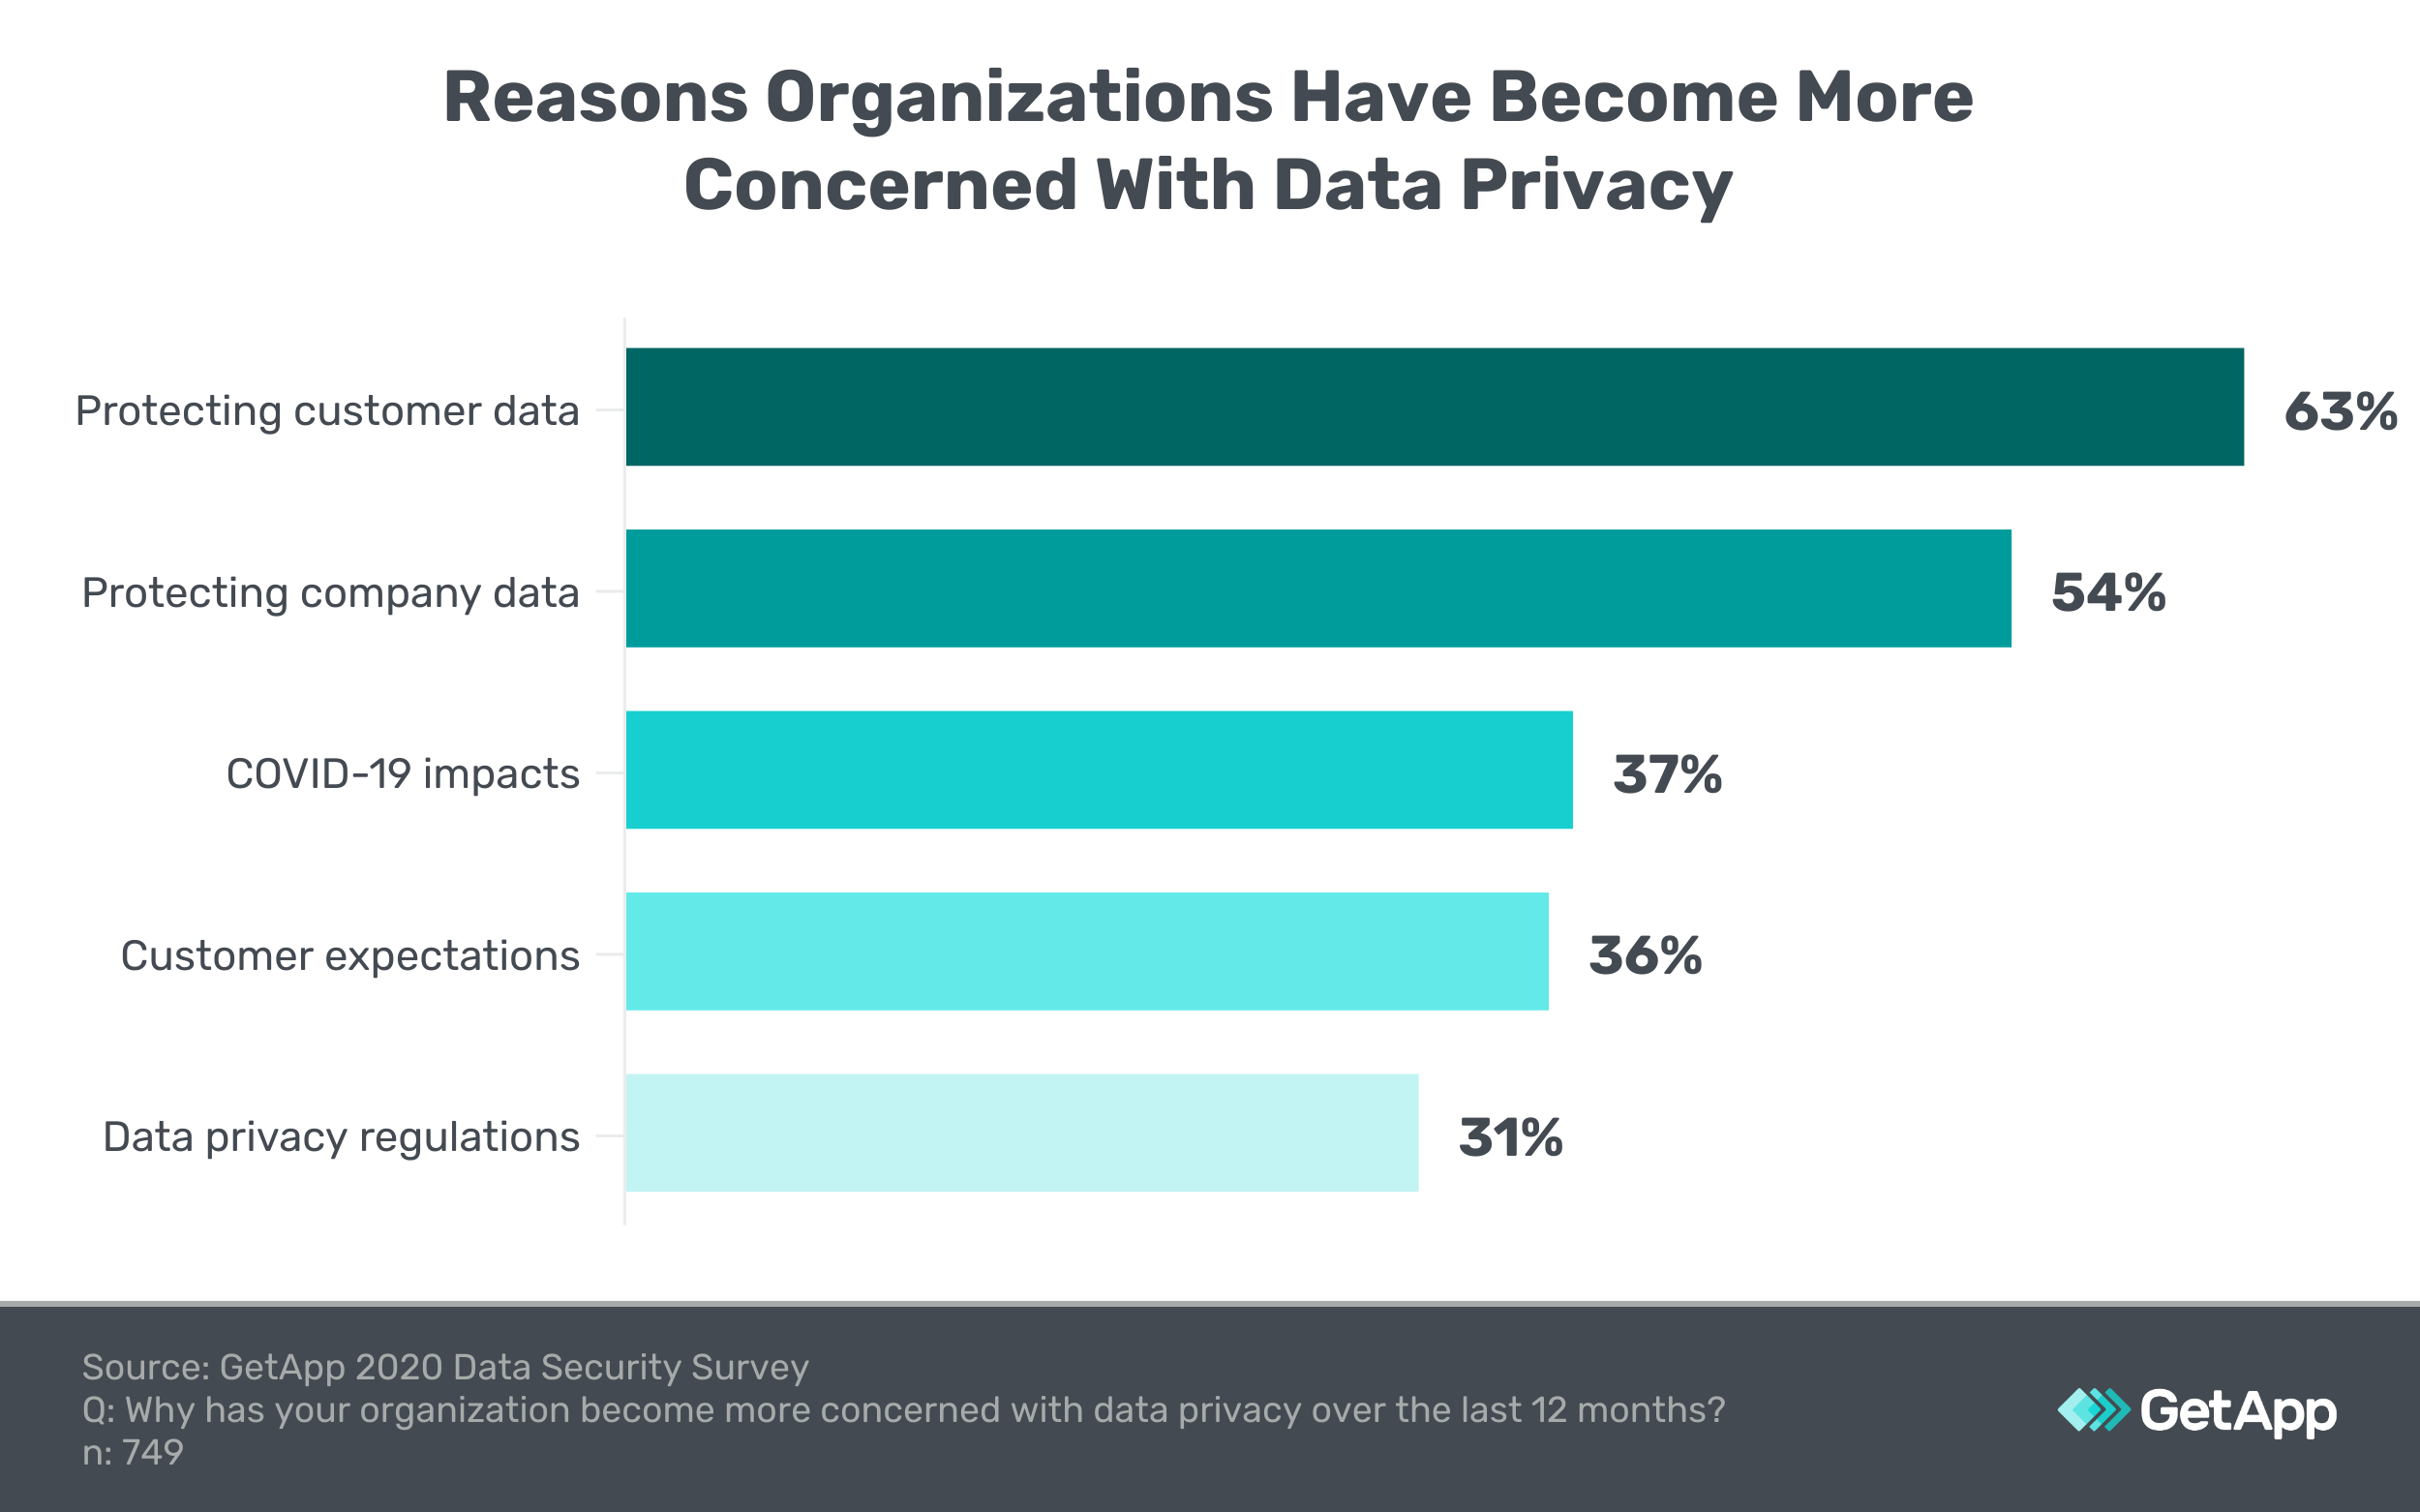 Graphic showing the reasons organizations have become more concerned about data privacy.